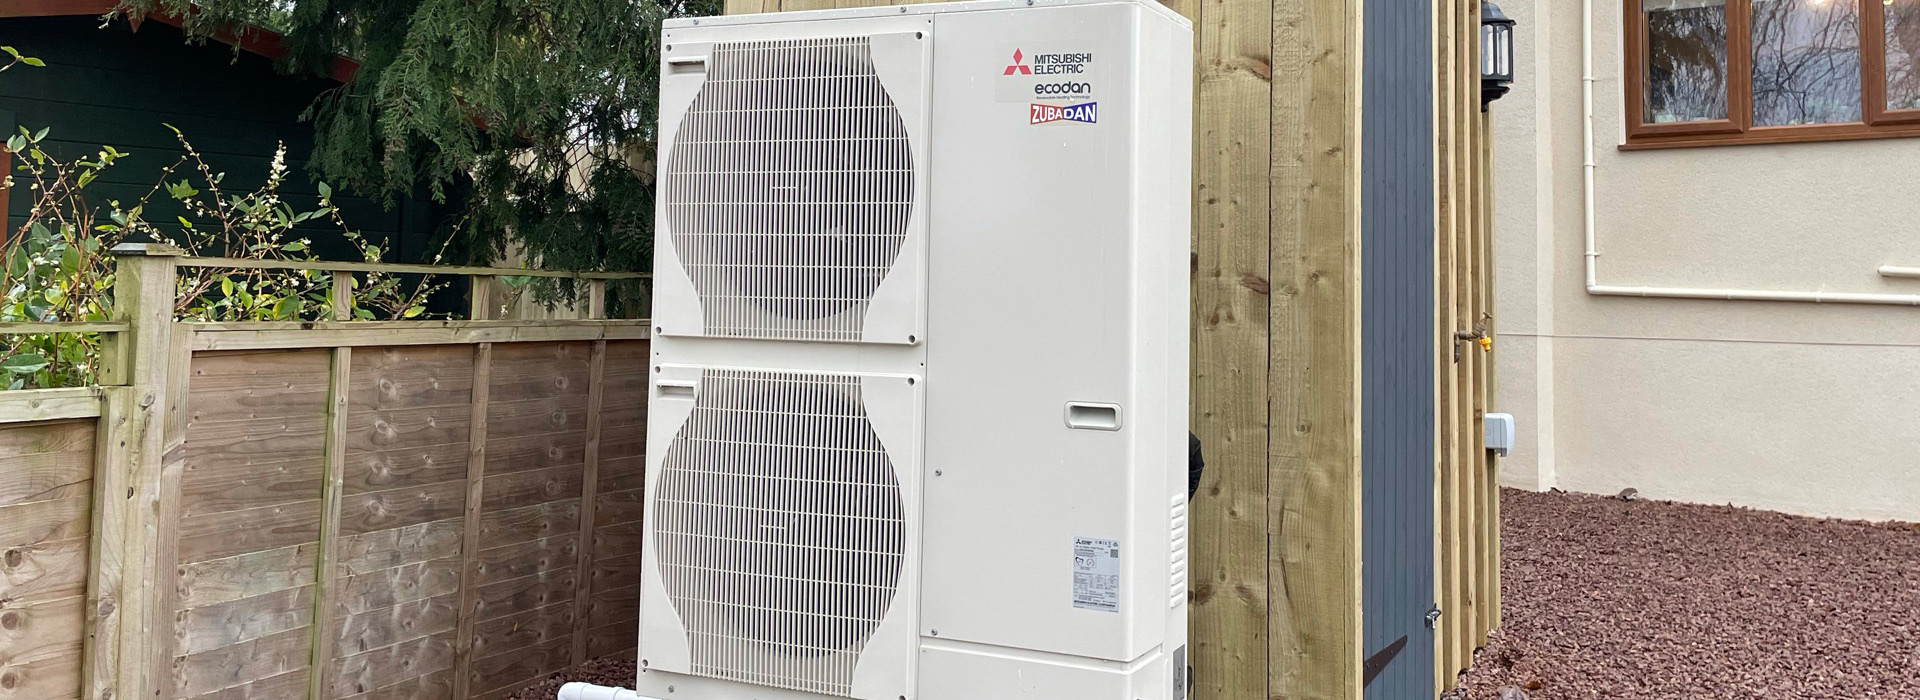 air source heat pump green energy systems